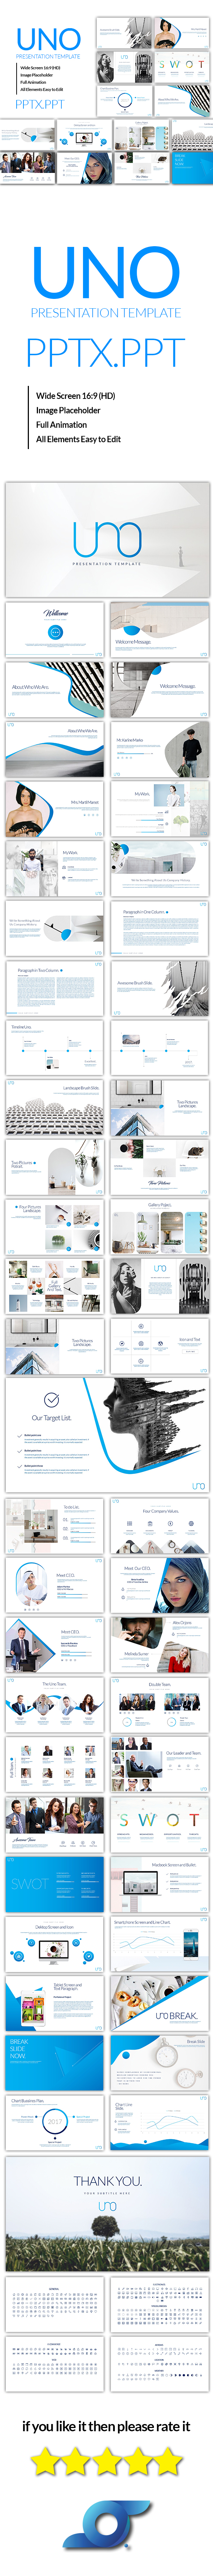 Uno Powerpoint Template - PowerPoint Templates Presentation Templates